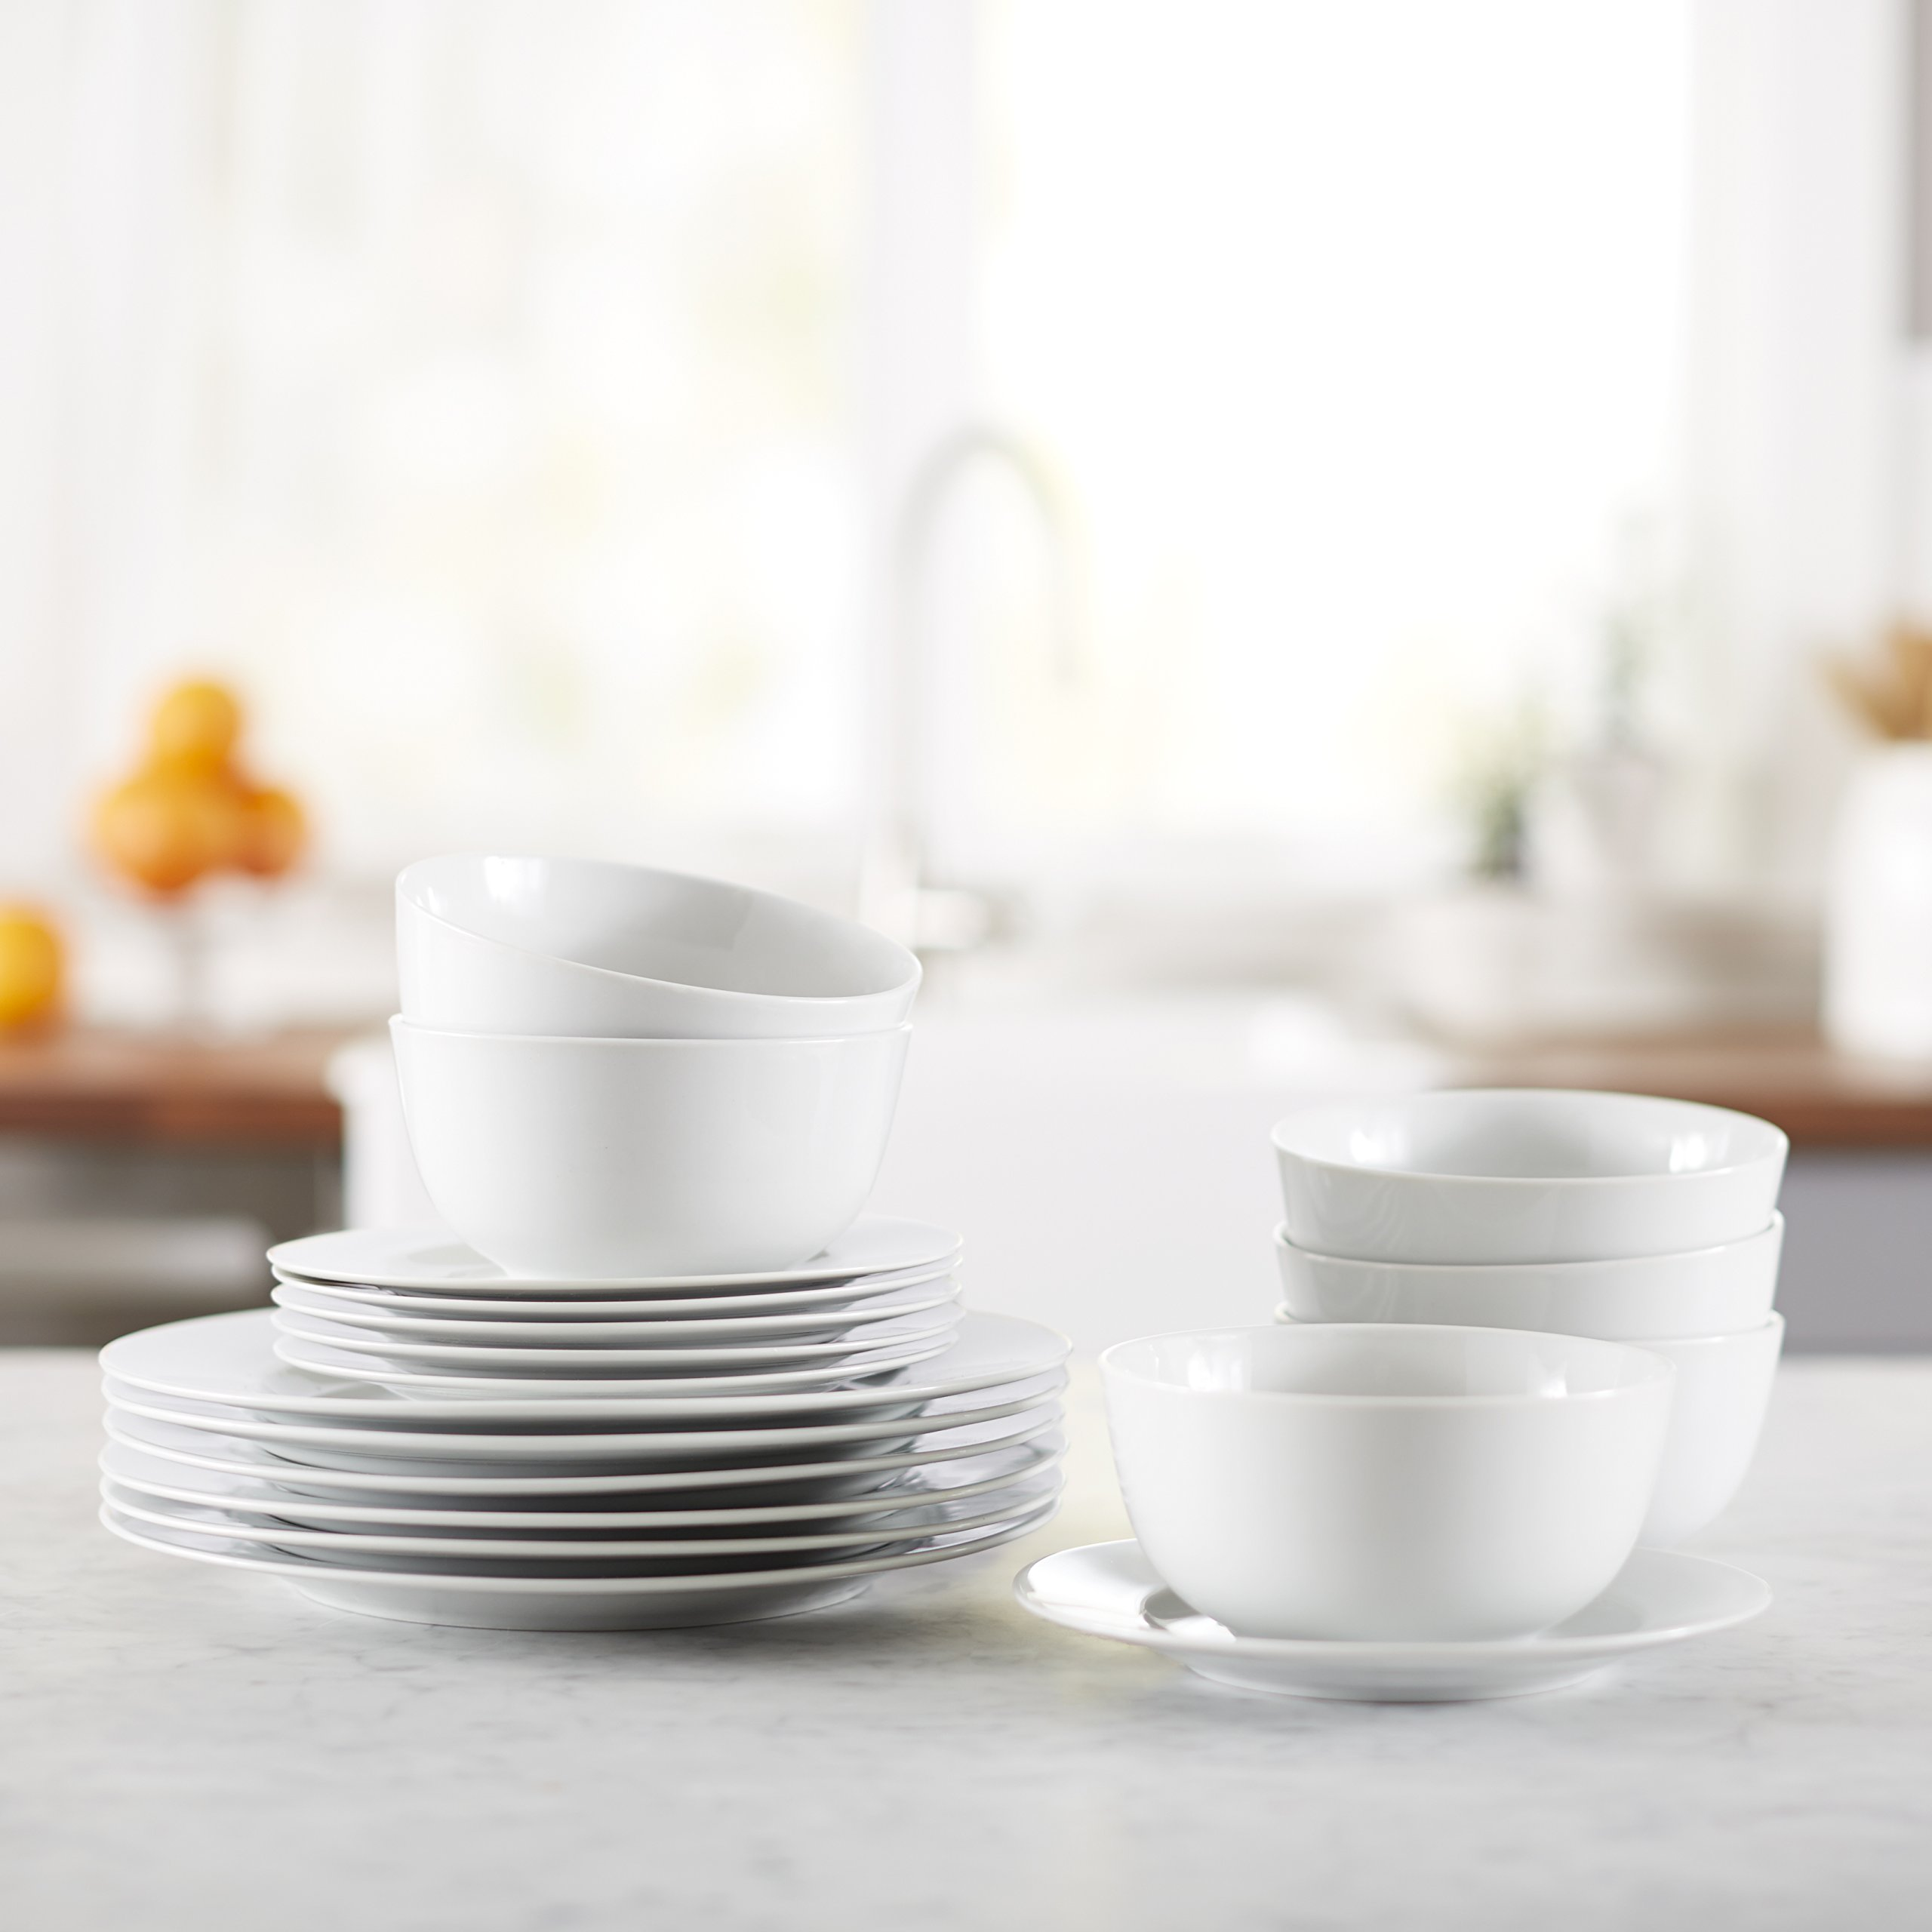 AmazonBasics 18-Piece Dinnerware Set, Service for 6 by AmazonBasics (Image #2)